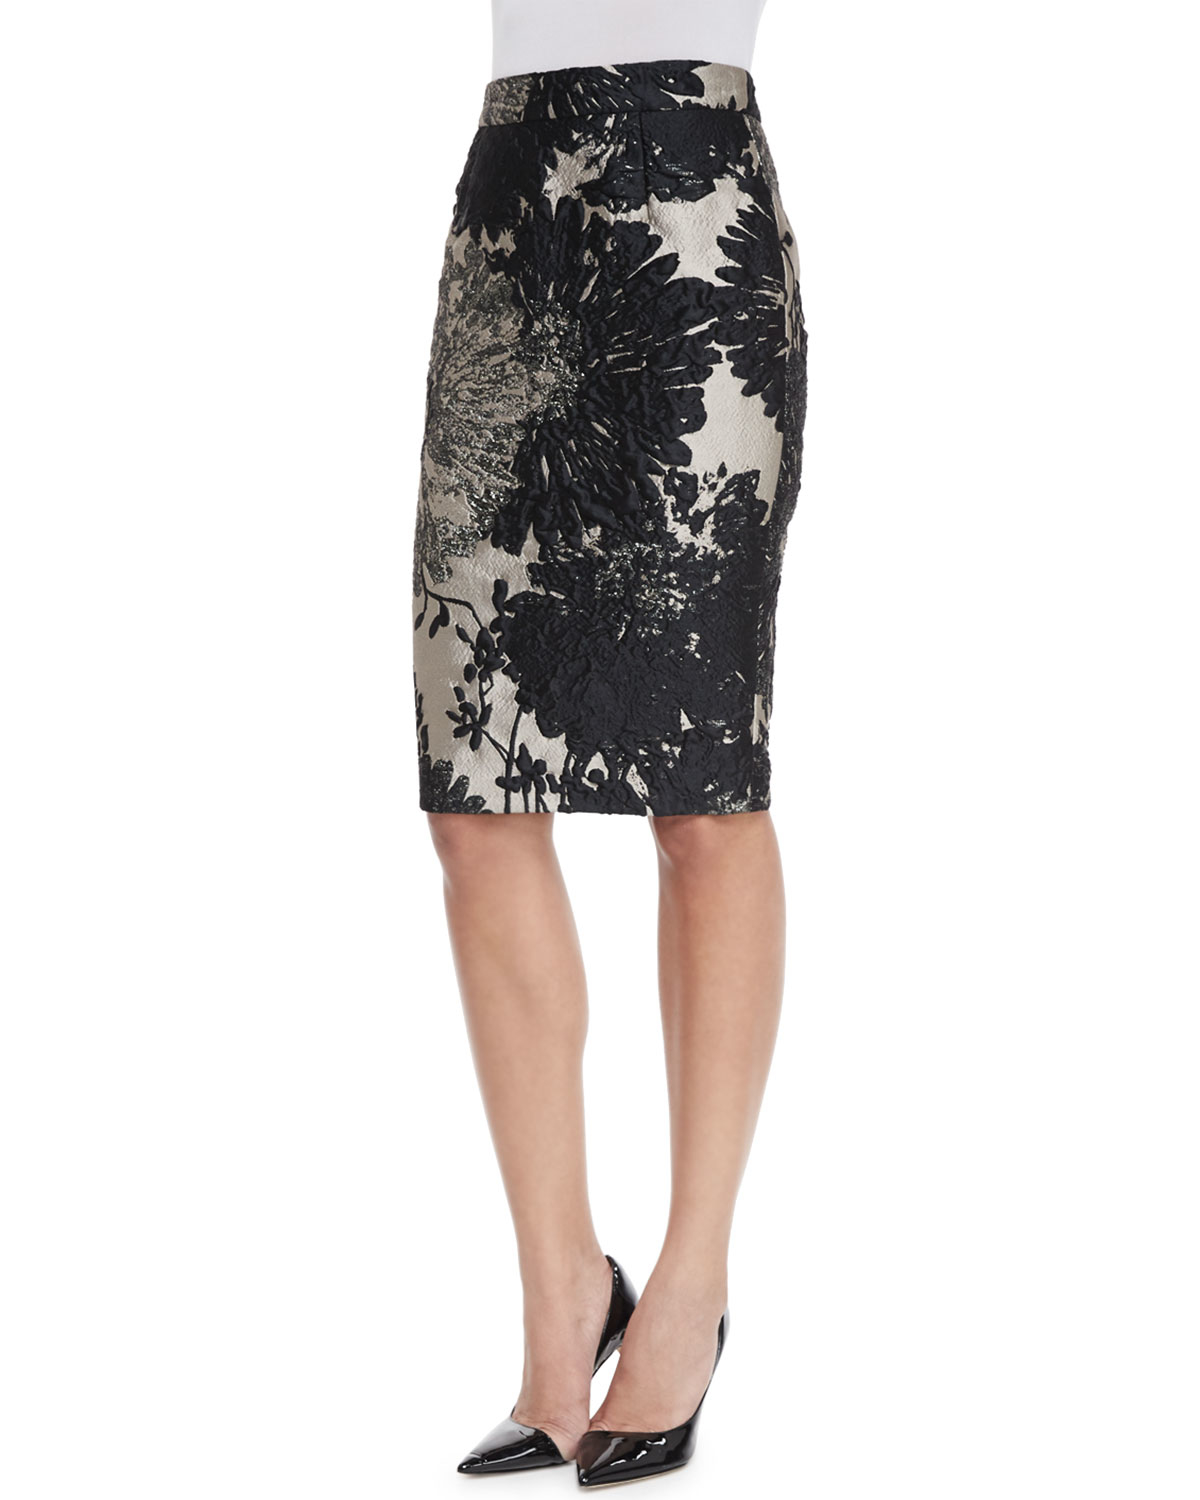 Escada High-Waist Pencil Skirt in Metallic | Lyst